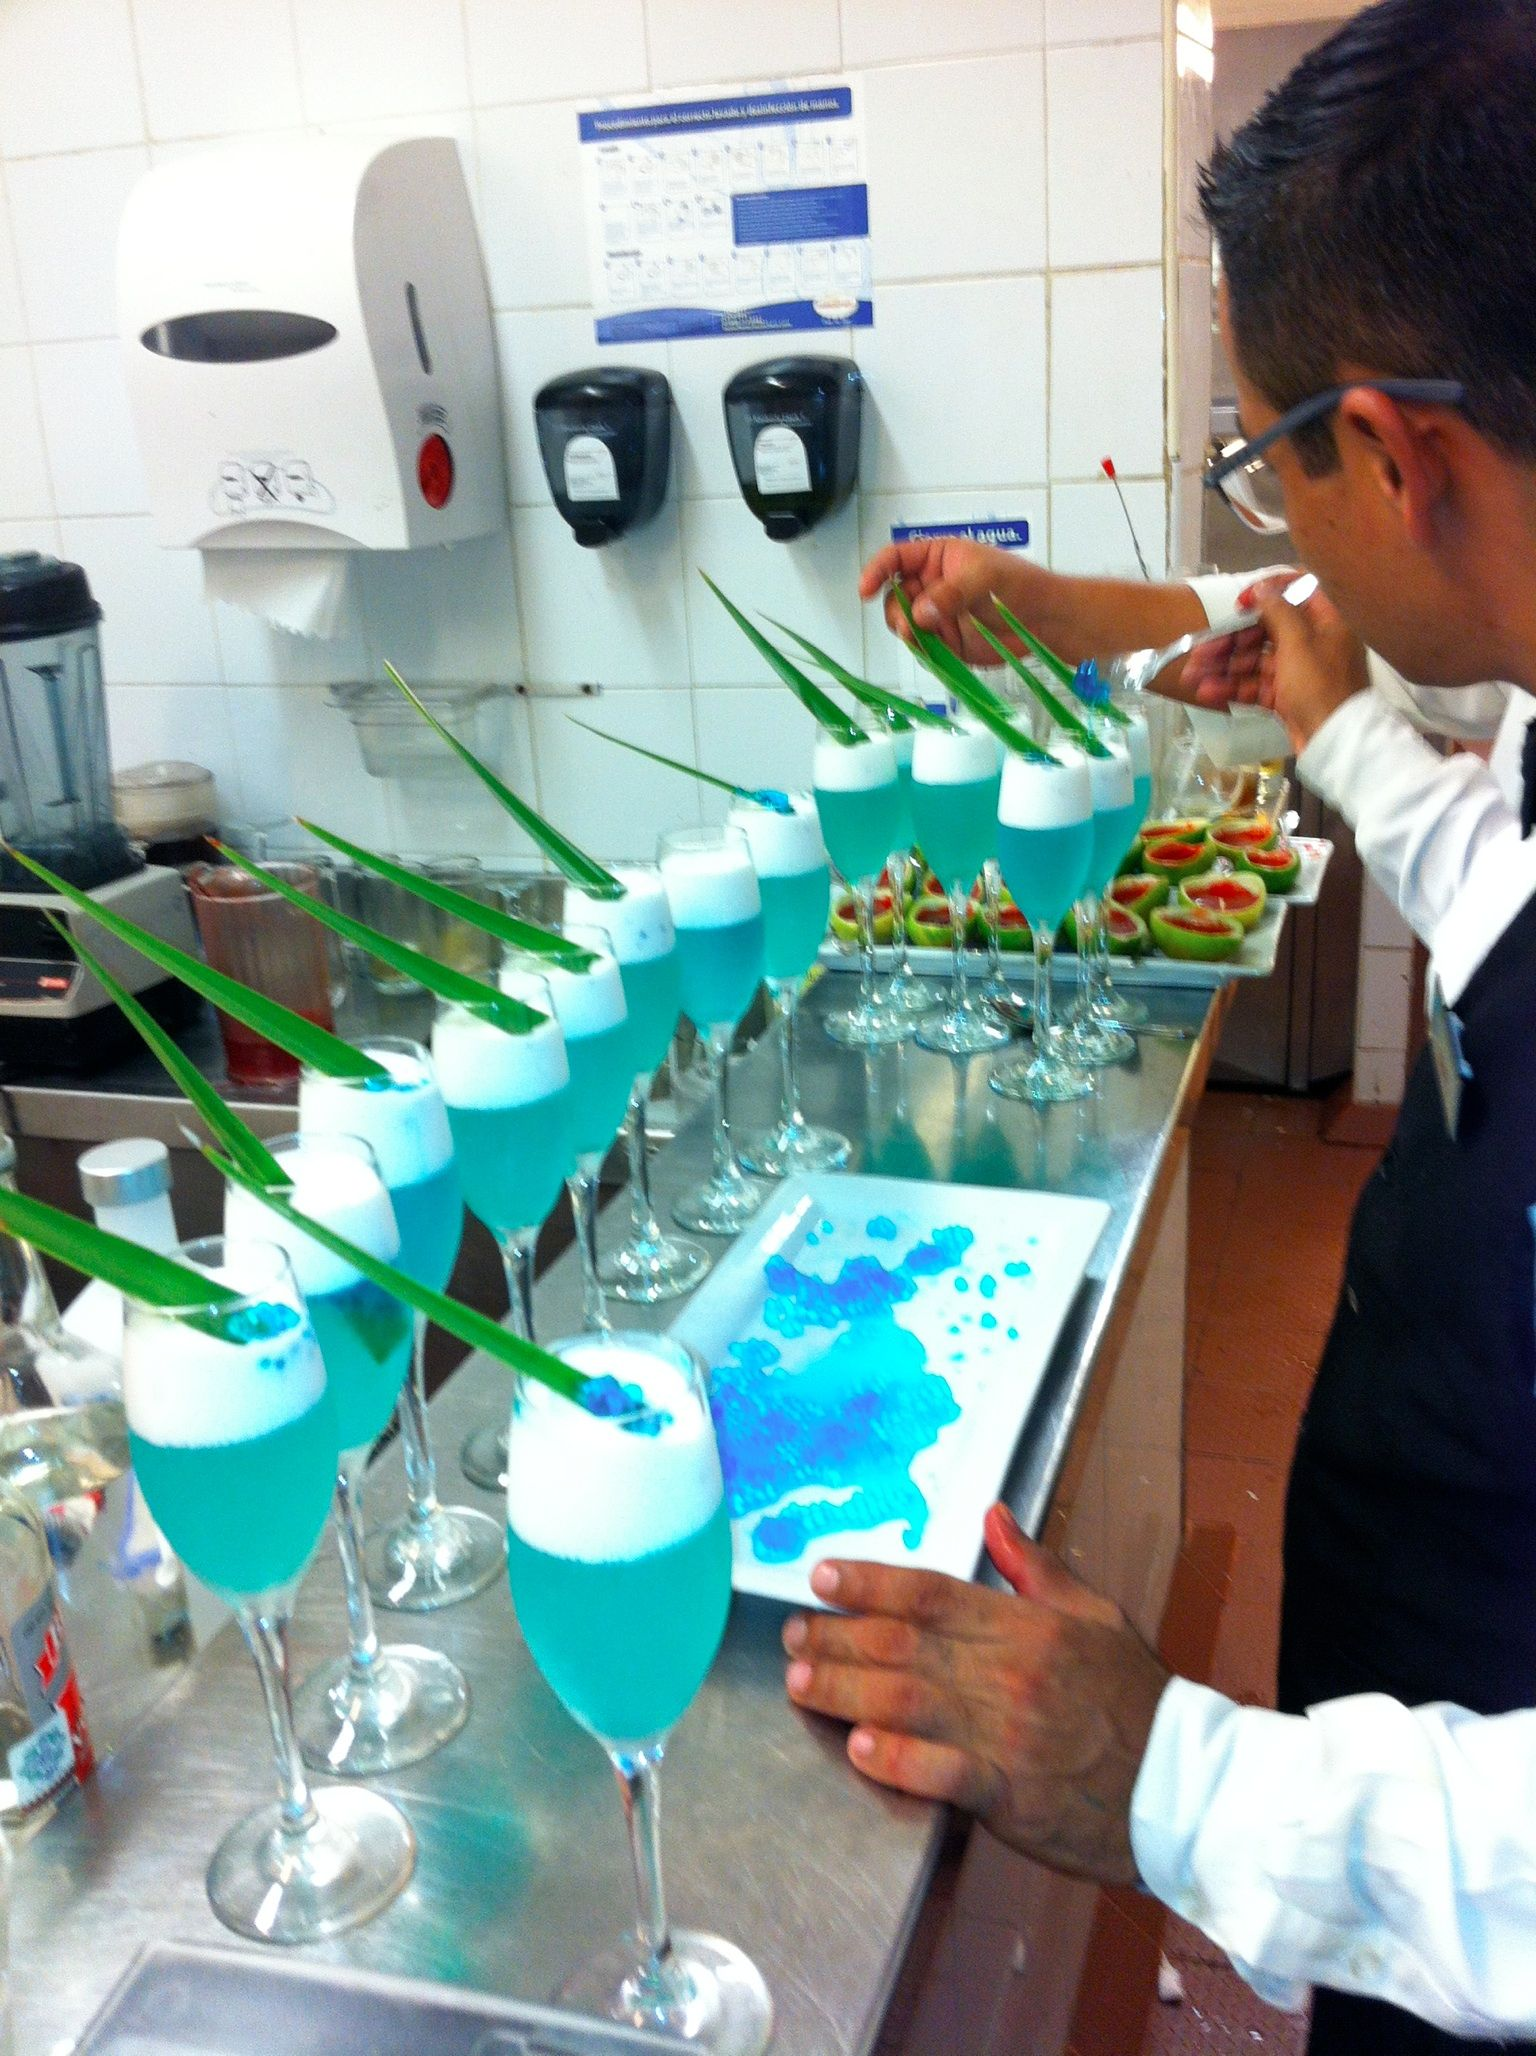 One of our events with molecular cocktails at now jade in cancun q roo. Follow our page http://www.facebook.com/TexturasBarMolecularMovil